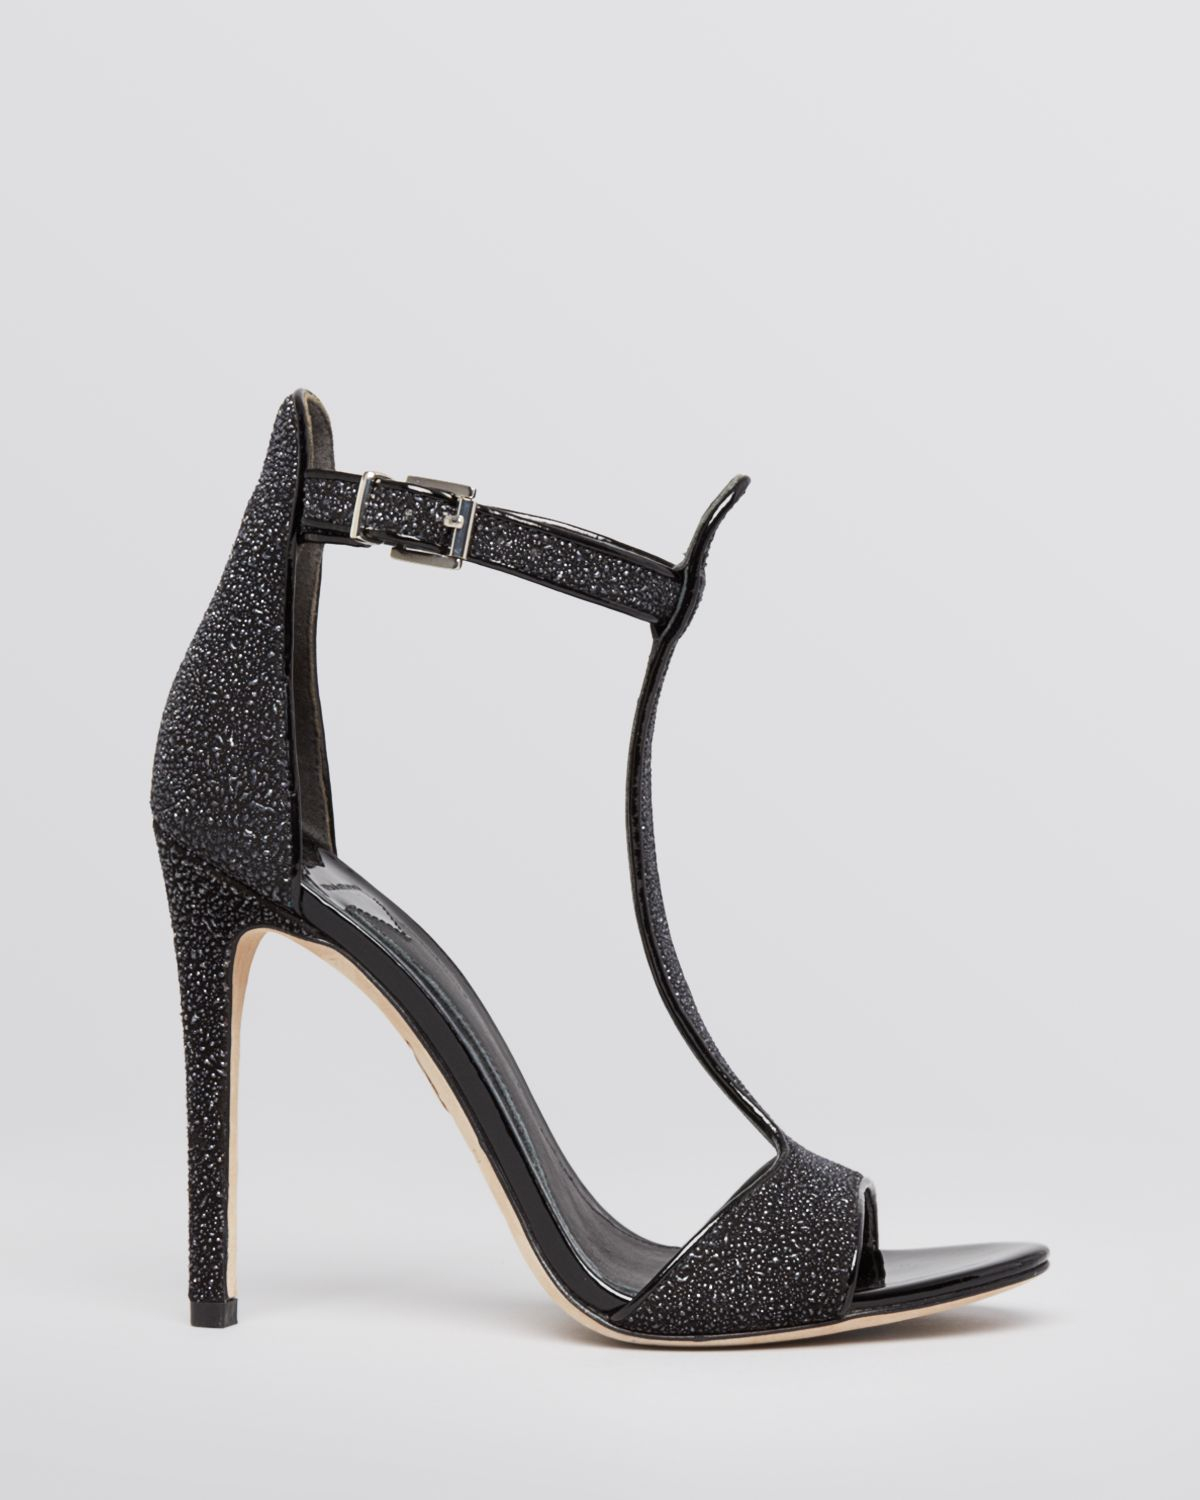 B Brian Atwood Satin T-Strap Sandals free shipping cheap quality outlet cheap authentic 0zEGBMM